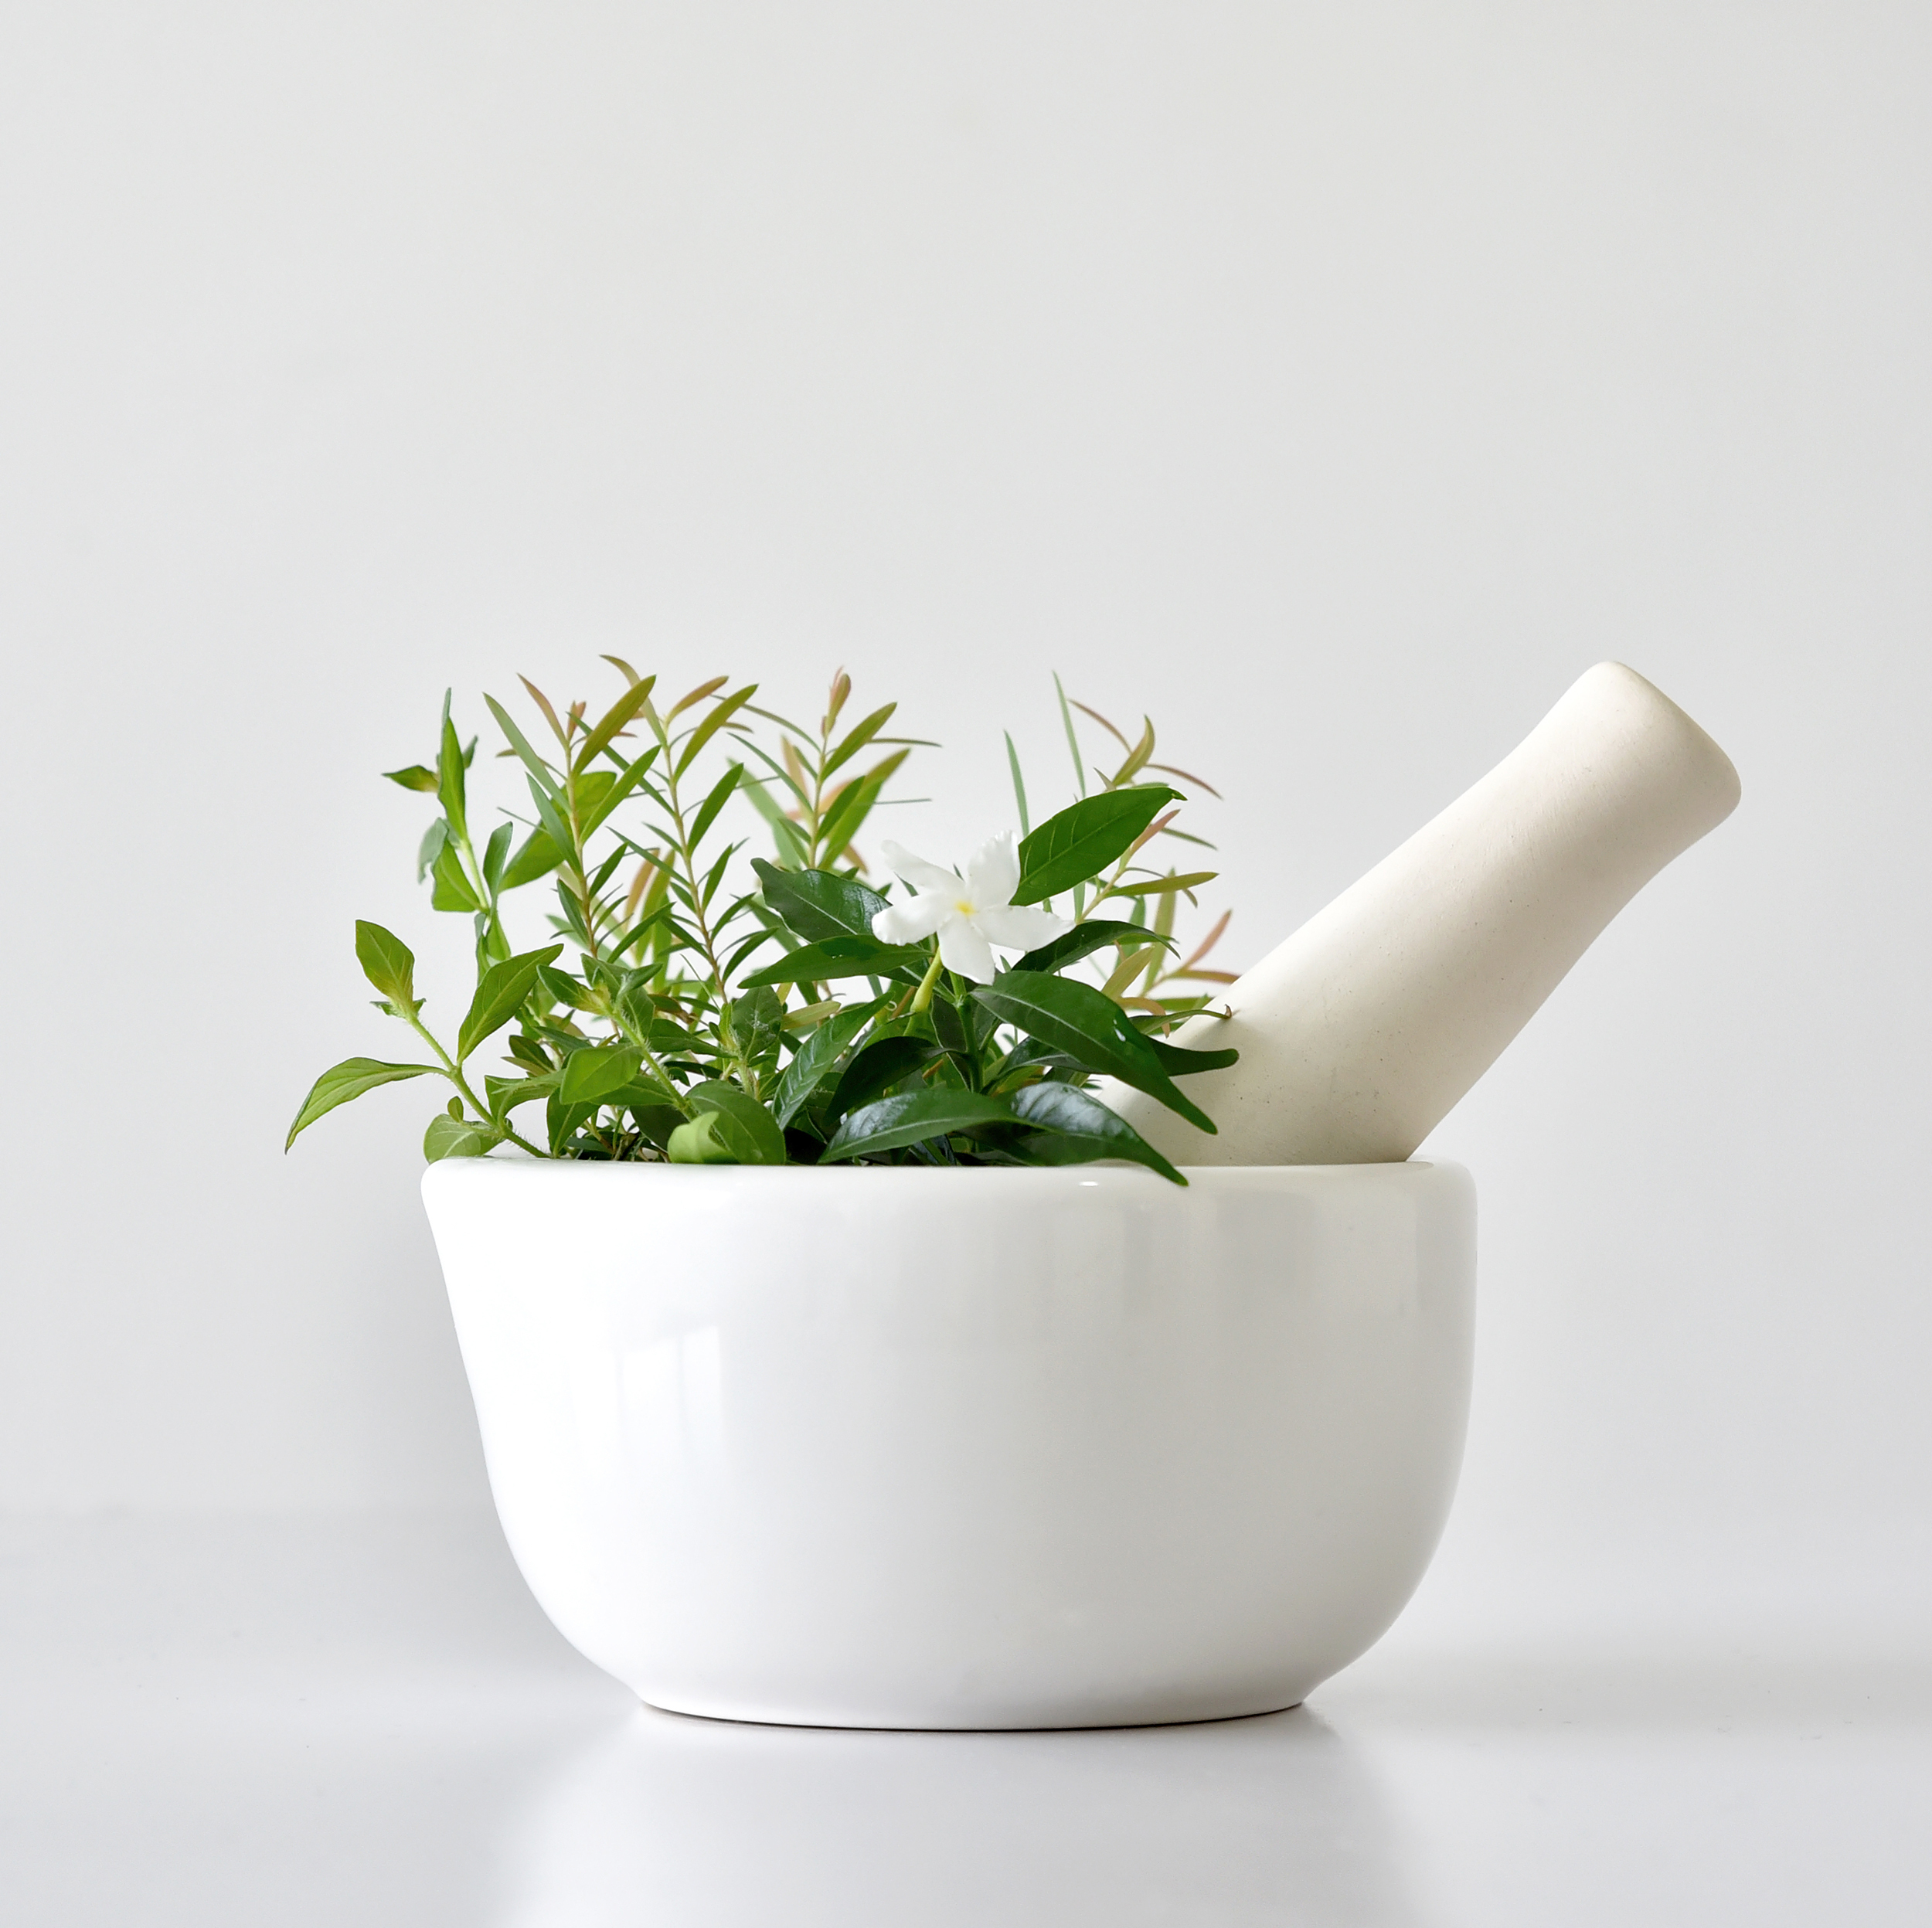 Mortar & pestle and herbs